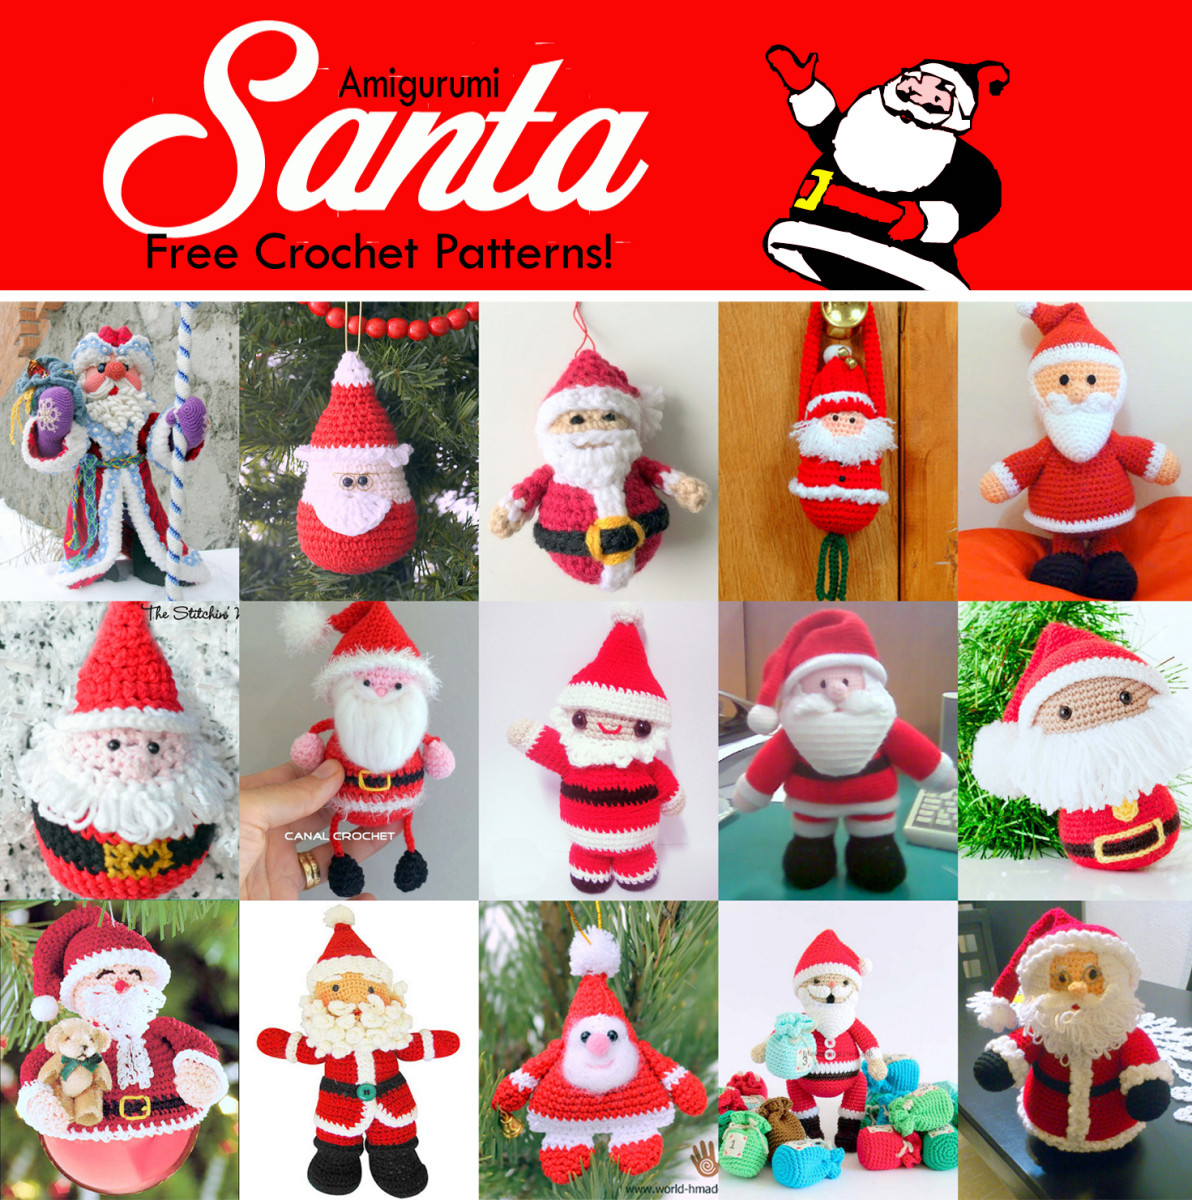 19 Free Amigurumi Christmas Santa Crochet Patterns